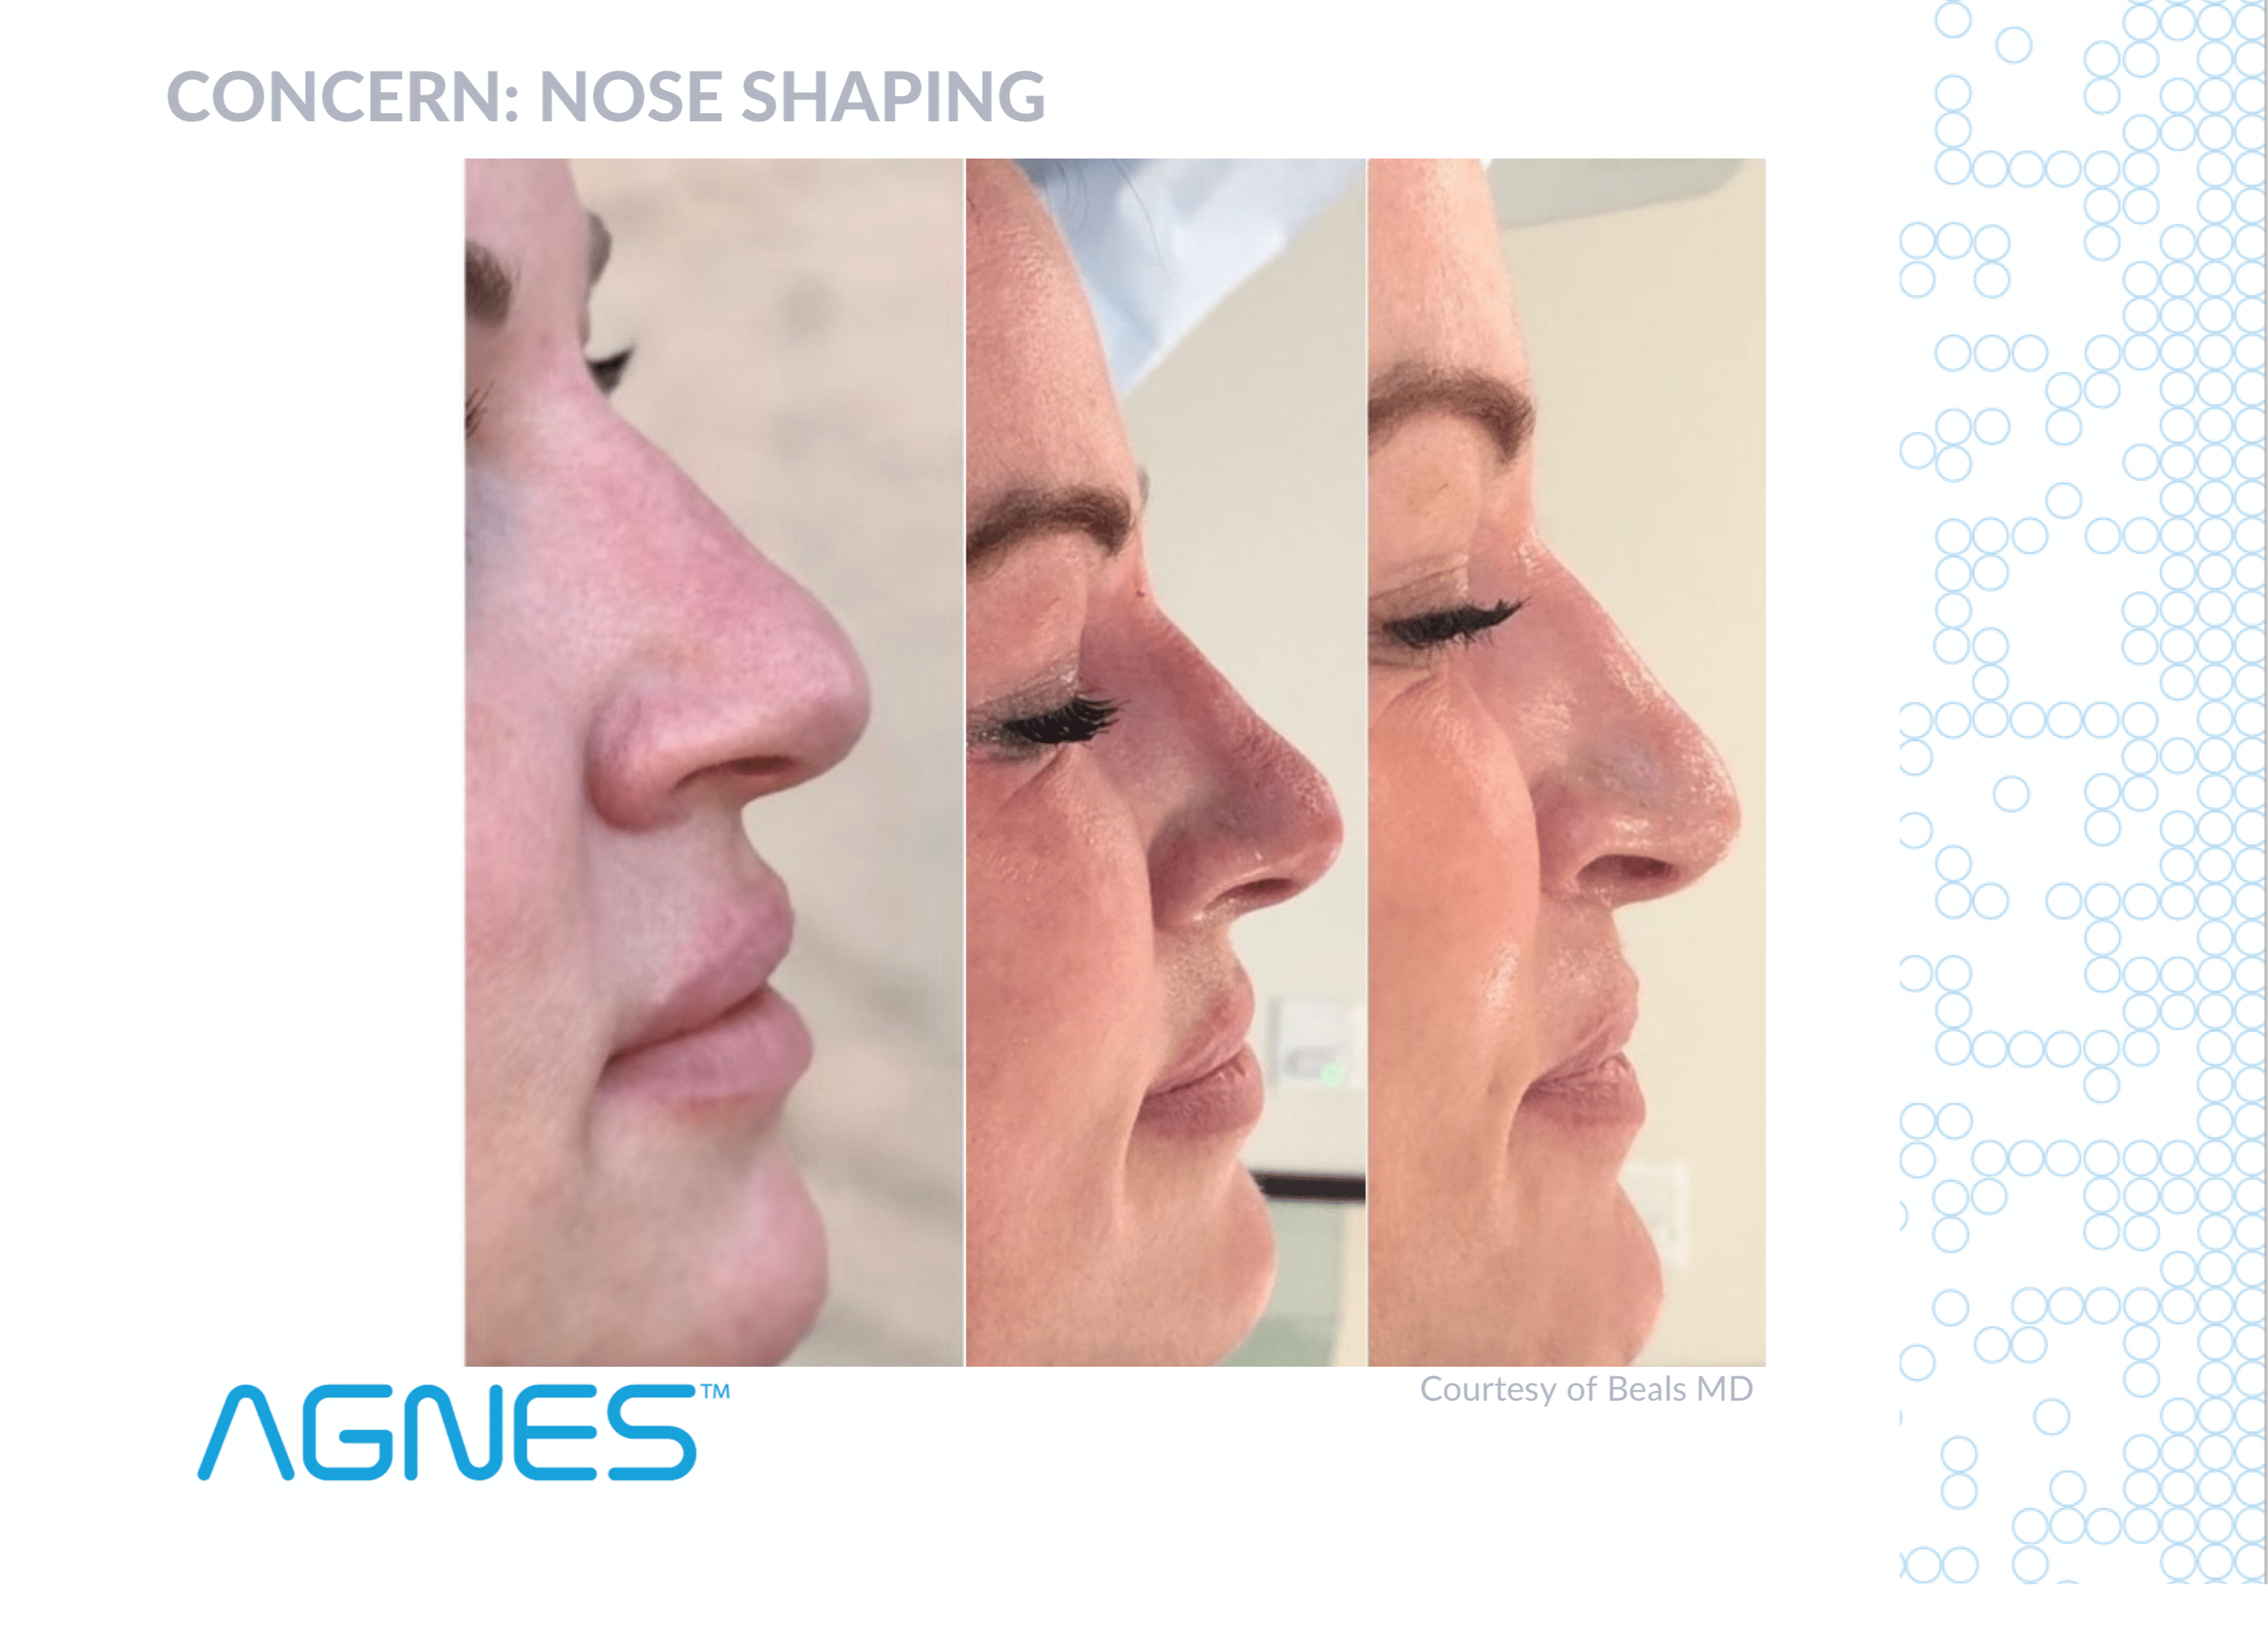 AGNES RF Before And After - Nose Shaping